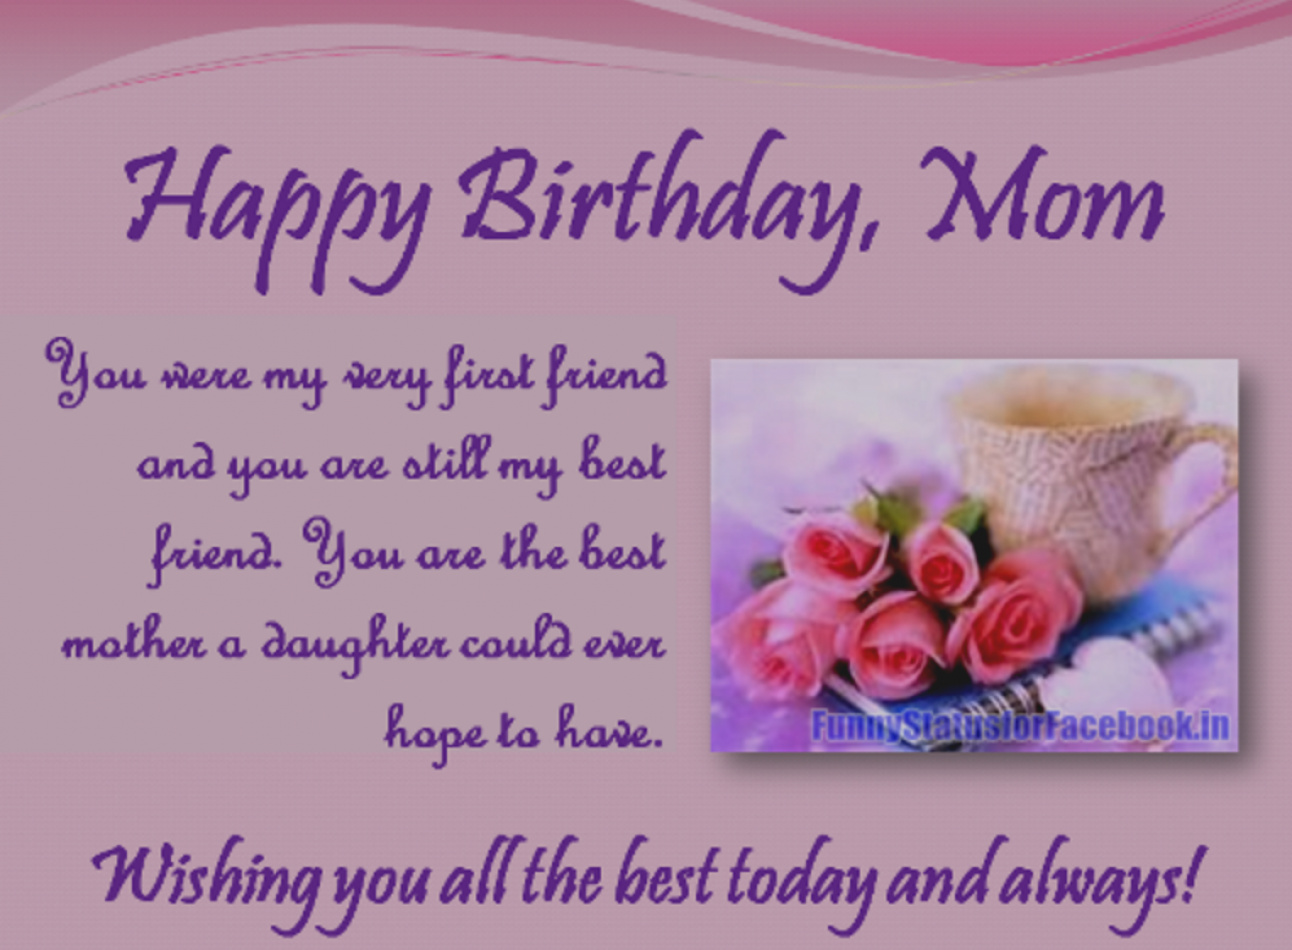 best birthday card messages for mom ; pictures-birthday-card-messages-for-mom-10-heartfelt-cards-with-quotes-to-send-your-lovely